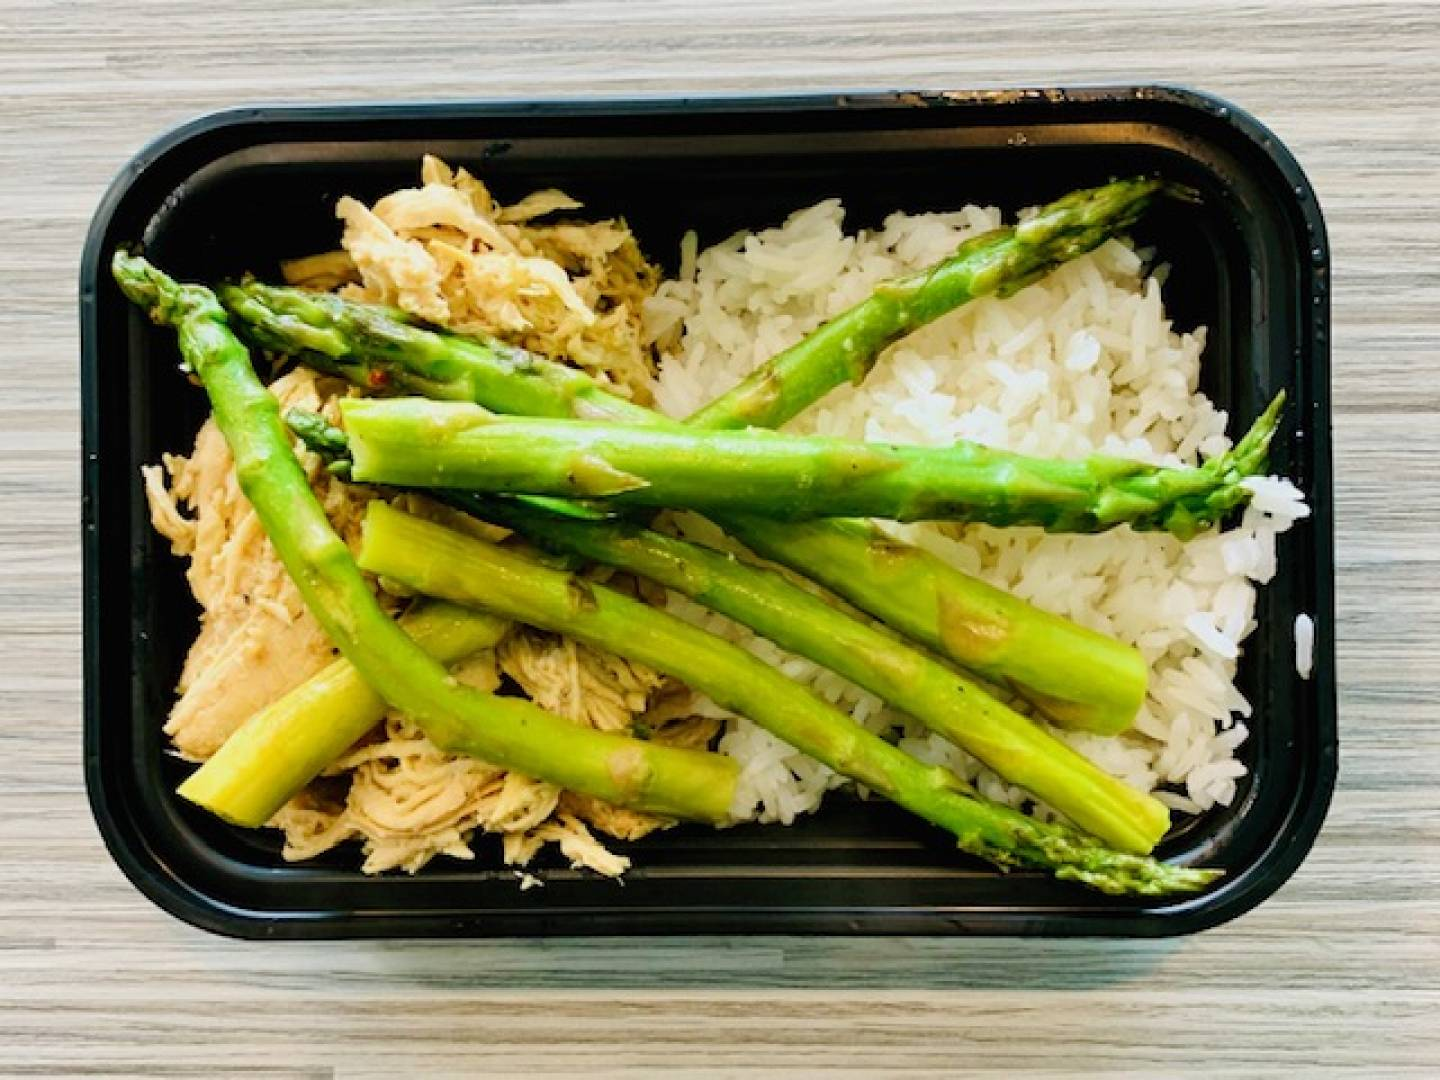 Shredded Chicken, Jasmine Rice, Asparagus